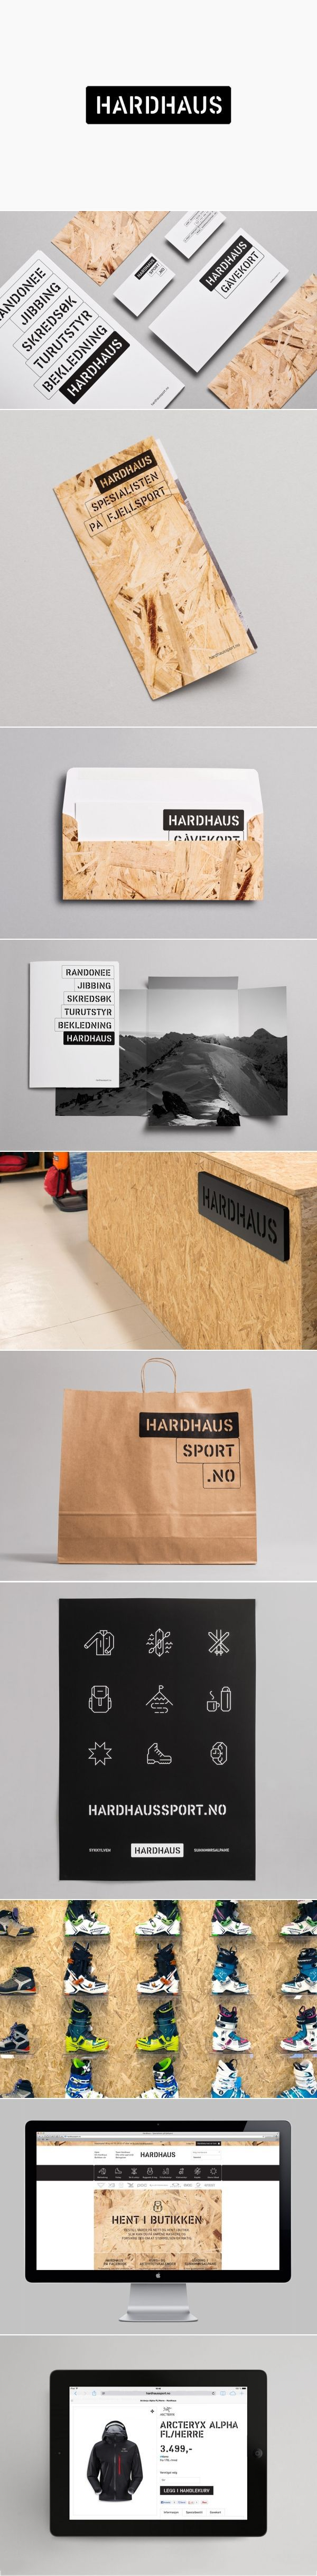 Hardhaus Sports Logo & Brand Identity Design. | #stationary #corporate #design #corporatedesign #identity #branding #marketing < repinned by www.BlickeDeeler.de | Visit our website: www.blickedeeler.de/leistungen/corporate-design